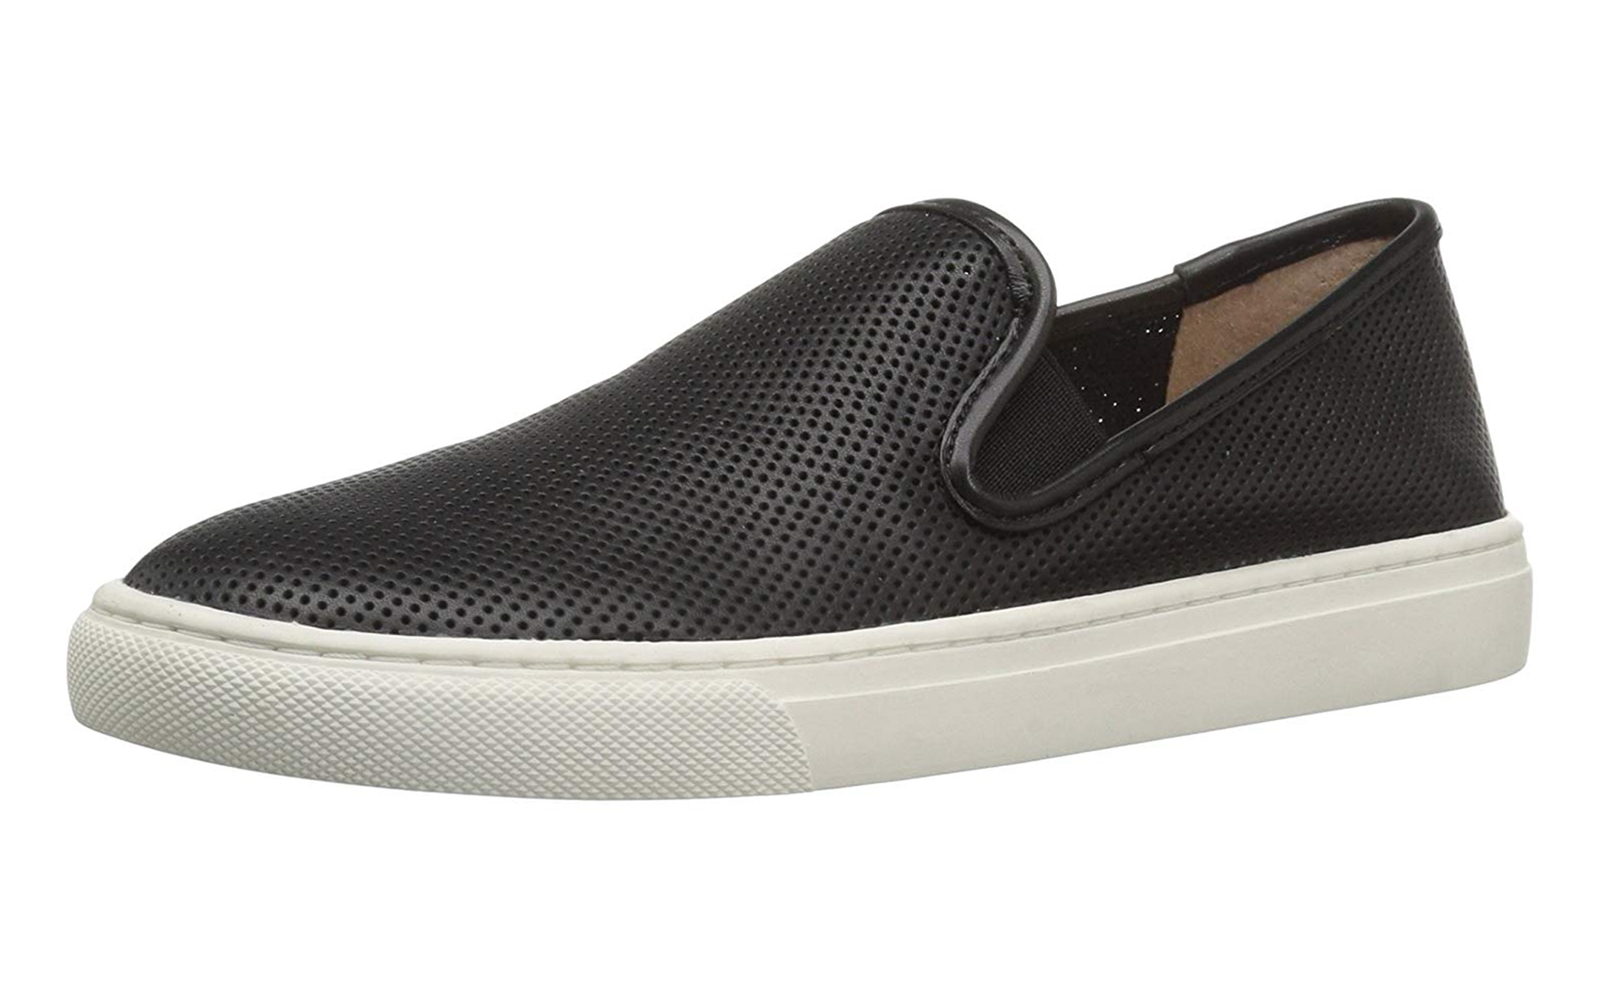 206 Collective Slip On Sneakers